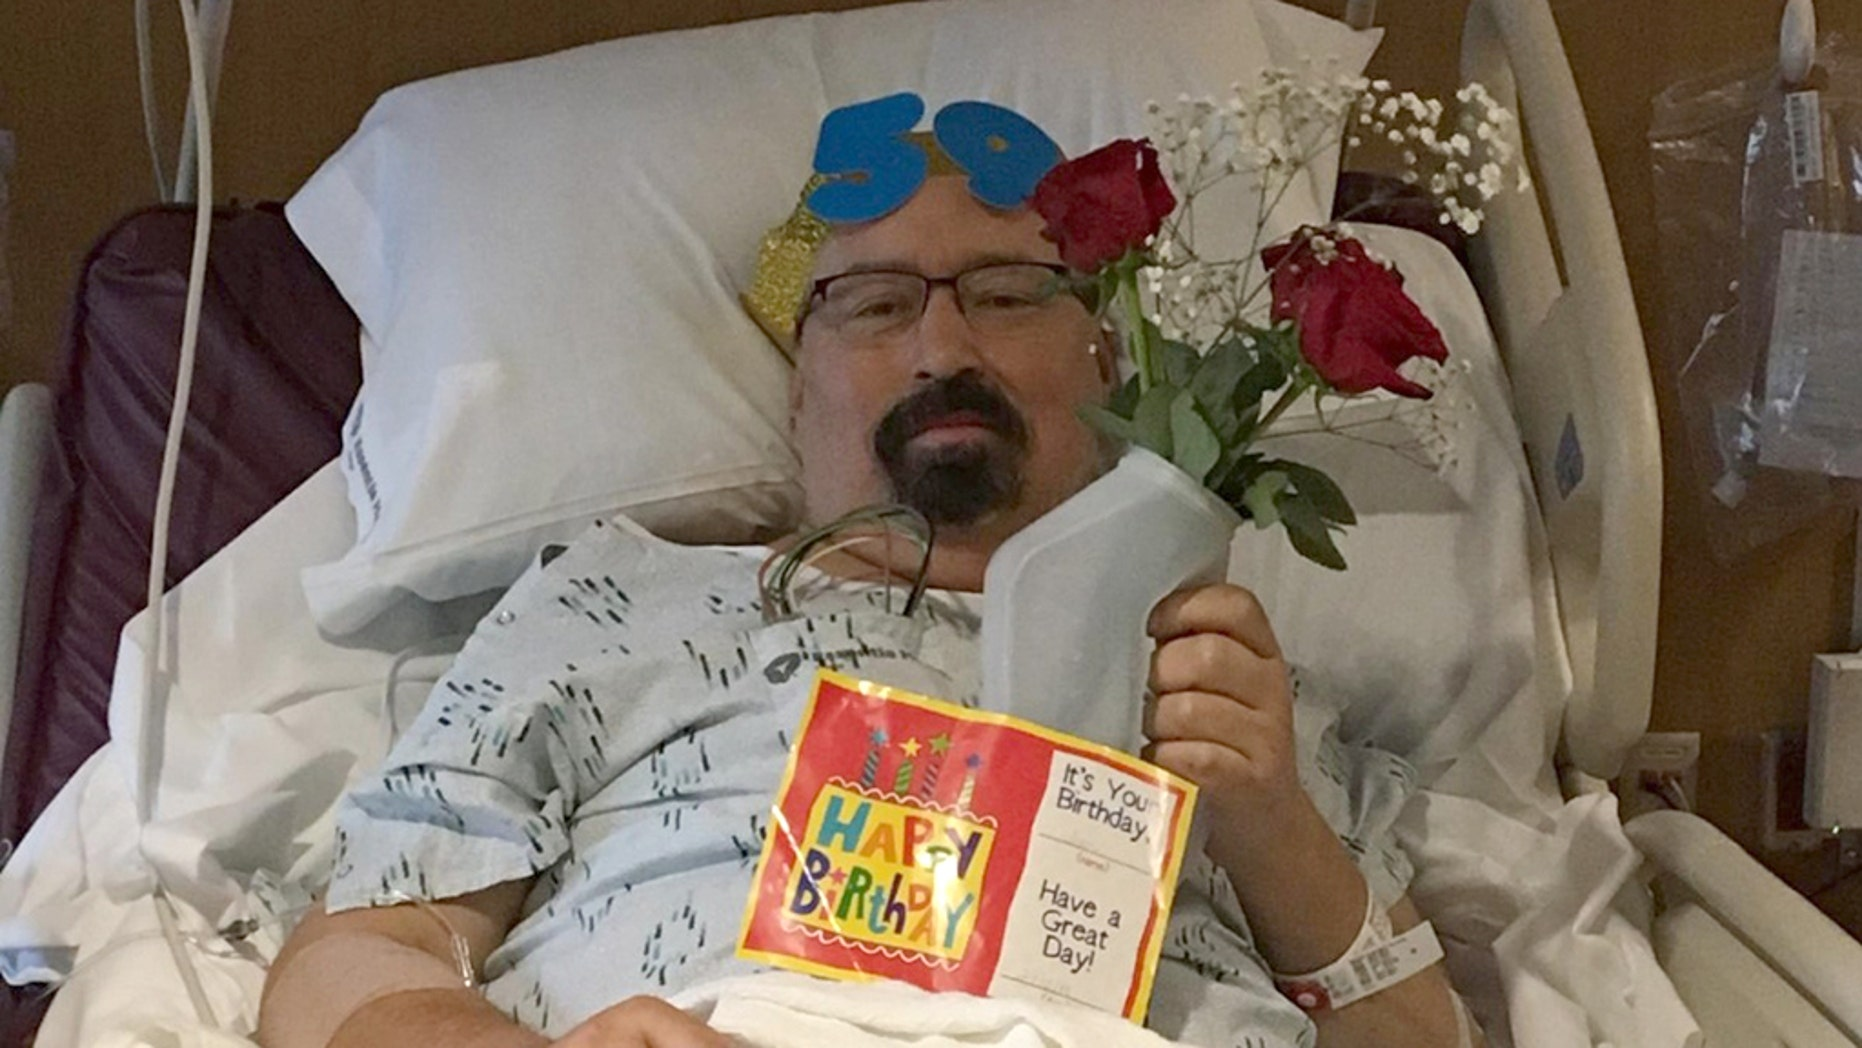 Mendoza was being treated for hypothermia after spending two days in his car inthe middle of a harsh winter storm when doctors made another discovery.